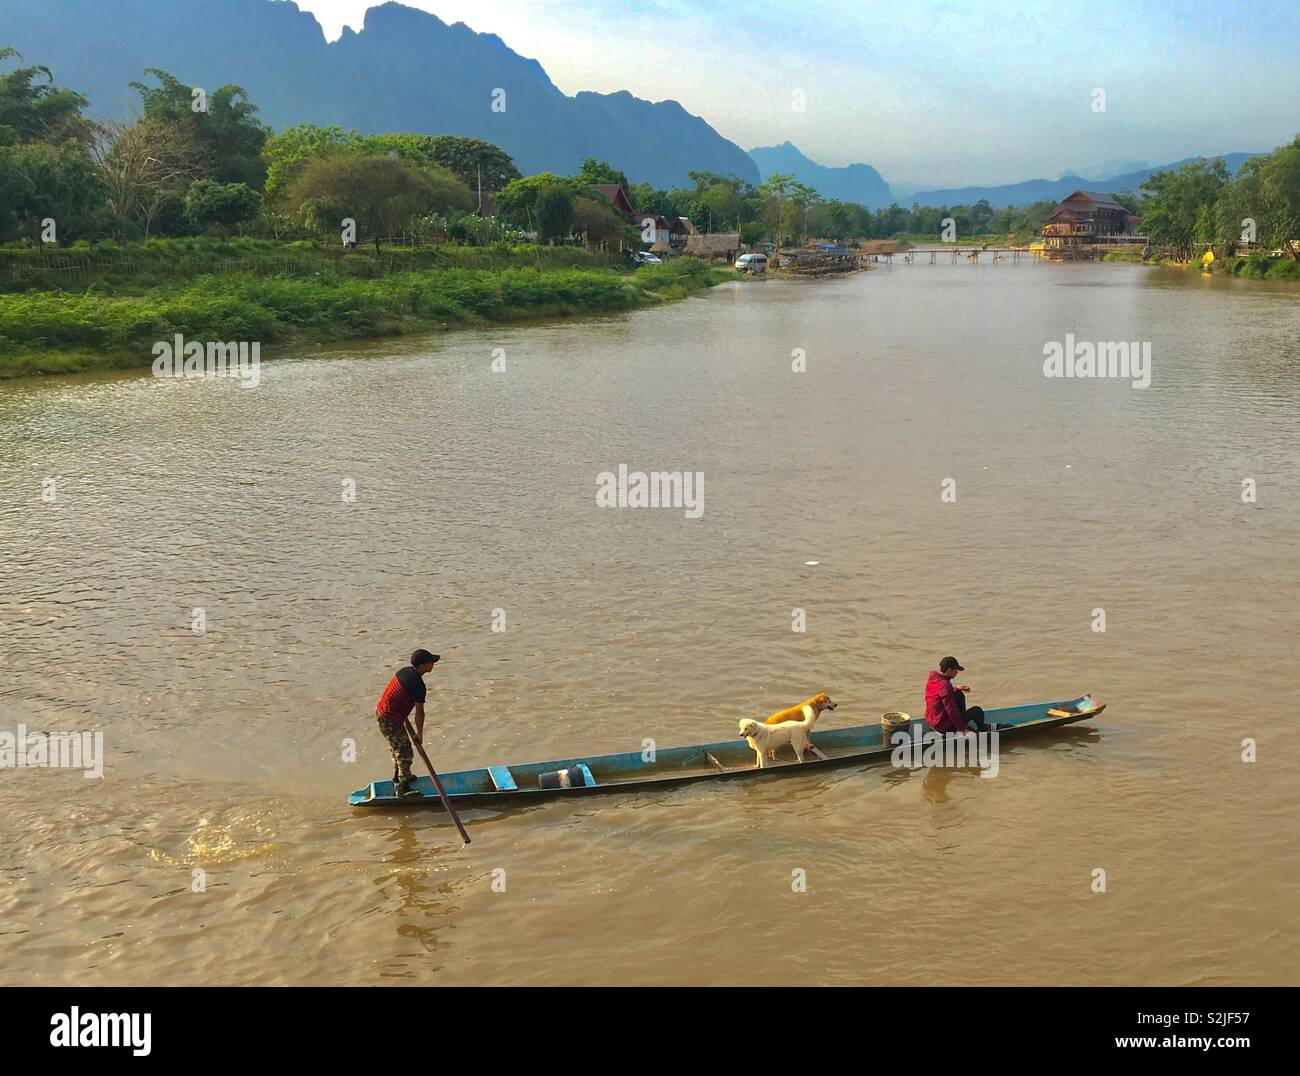 River in Vang Vieng Laos with people ferrying dogs over river Stock Photo